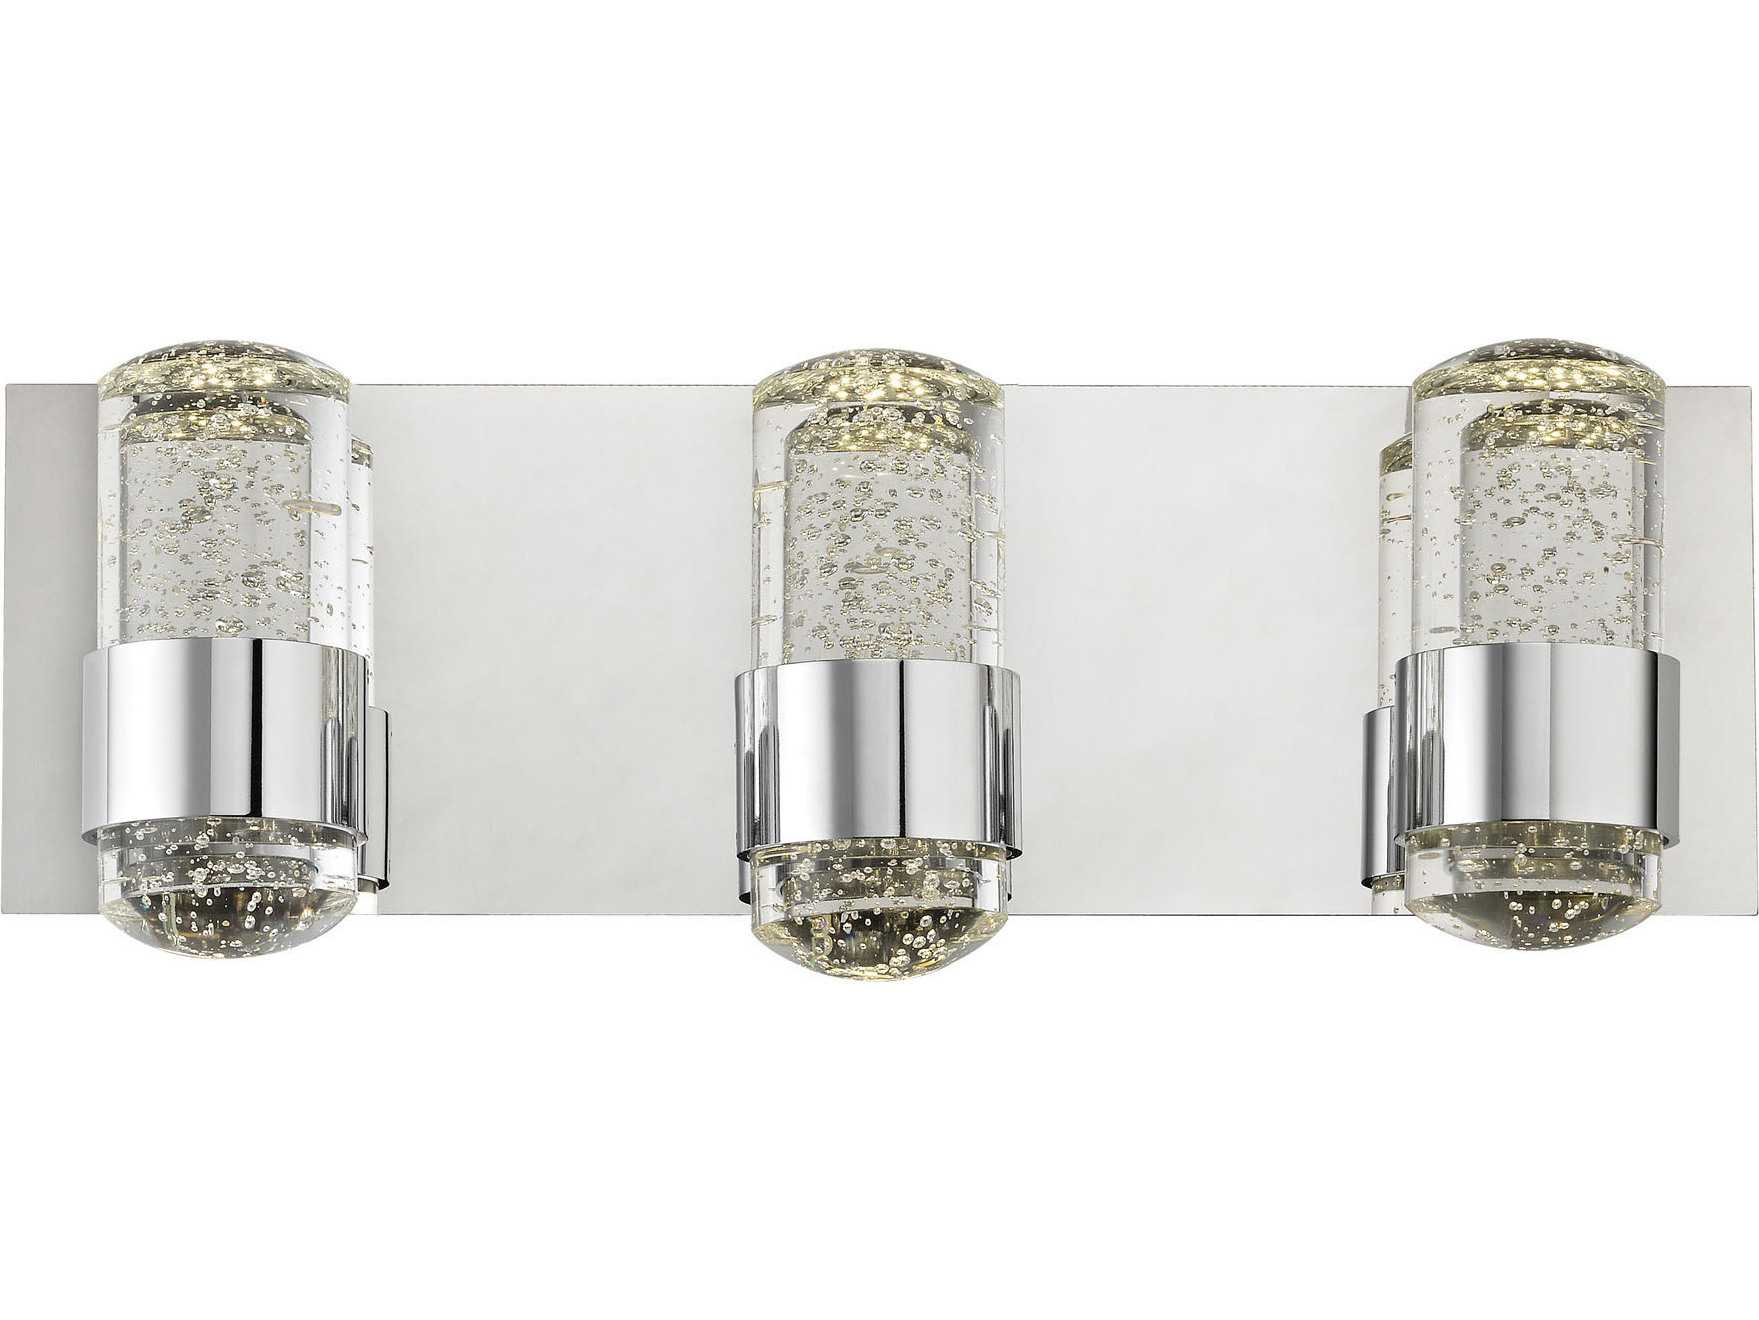 Vanity Lights With Clear Glass : Alico Surrey Chrome & Clear Glass Three-Light Vanity Light ALCBVL153015